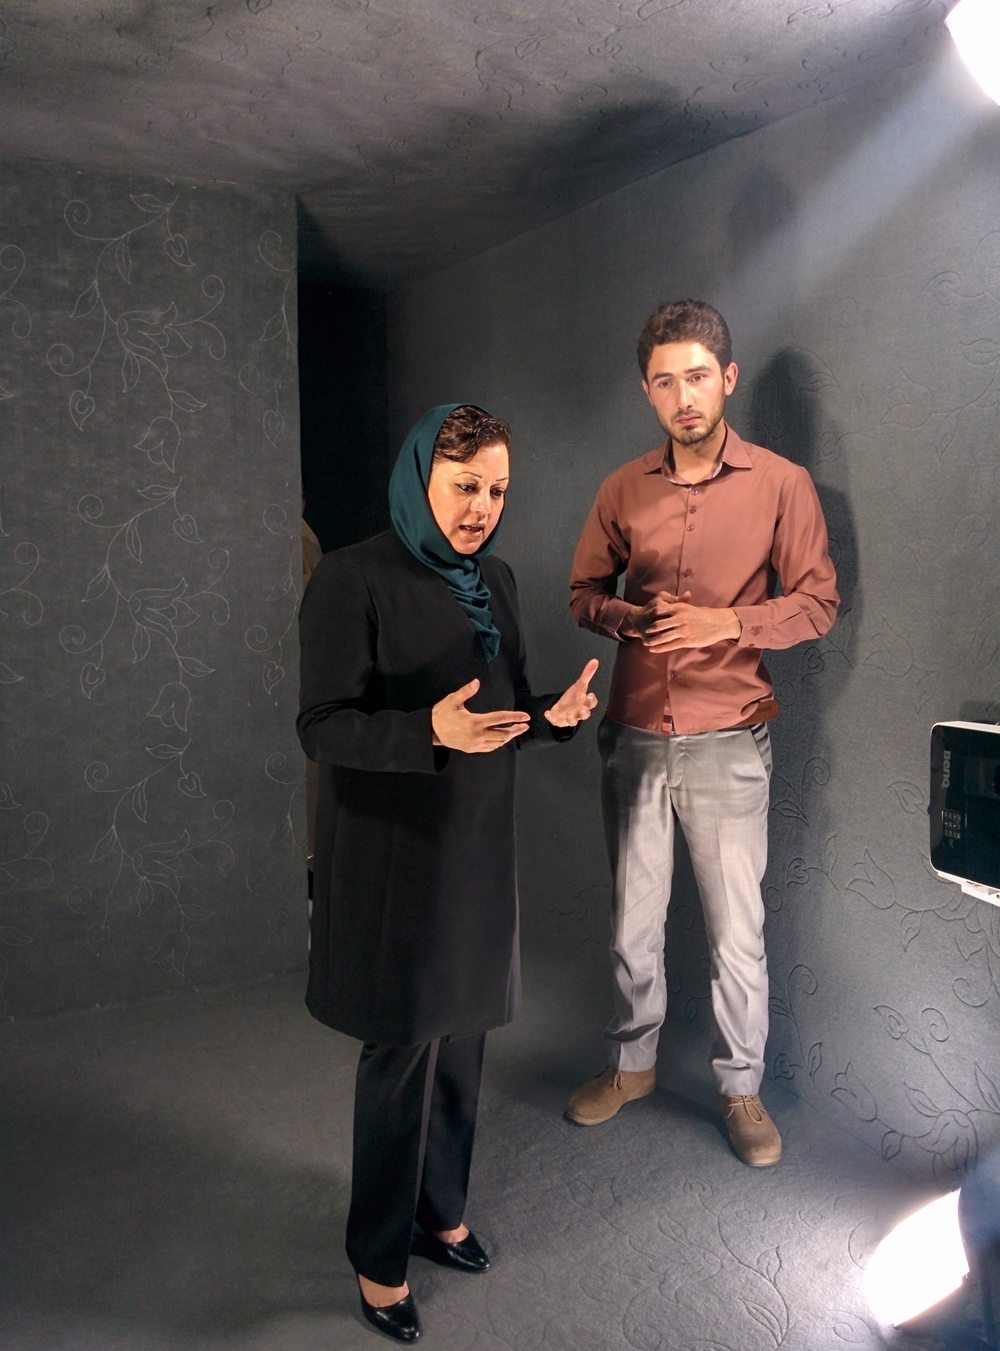 Afghanistan's first chief female prosecutor, Maria Bashir, in the Herat Portal with Omid Habibi speaking to Melanne Verveer in the U.S.